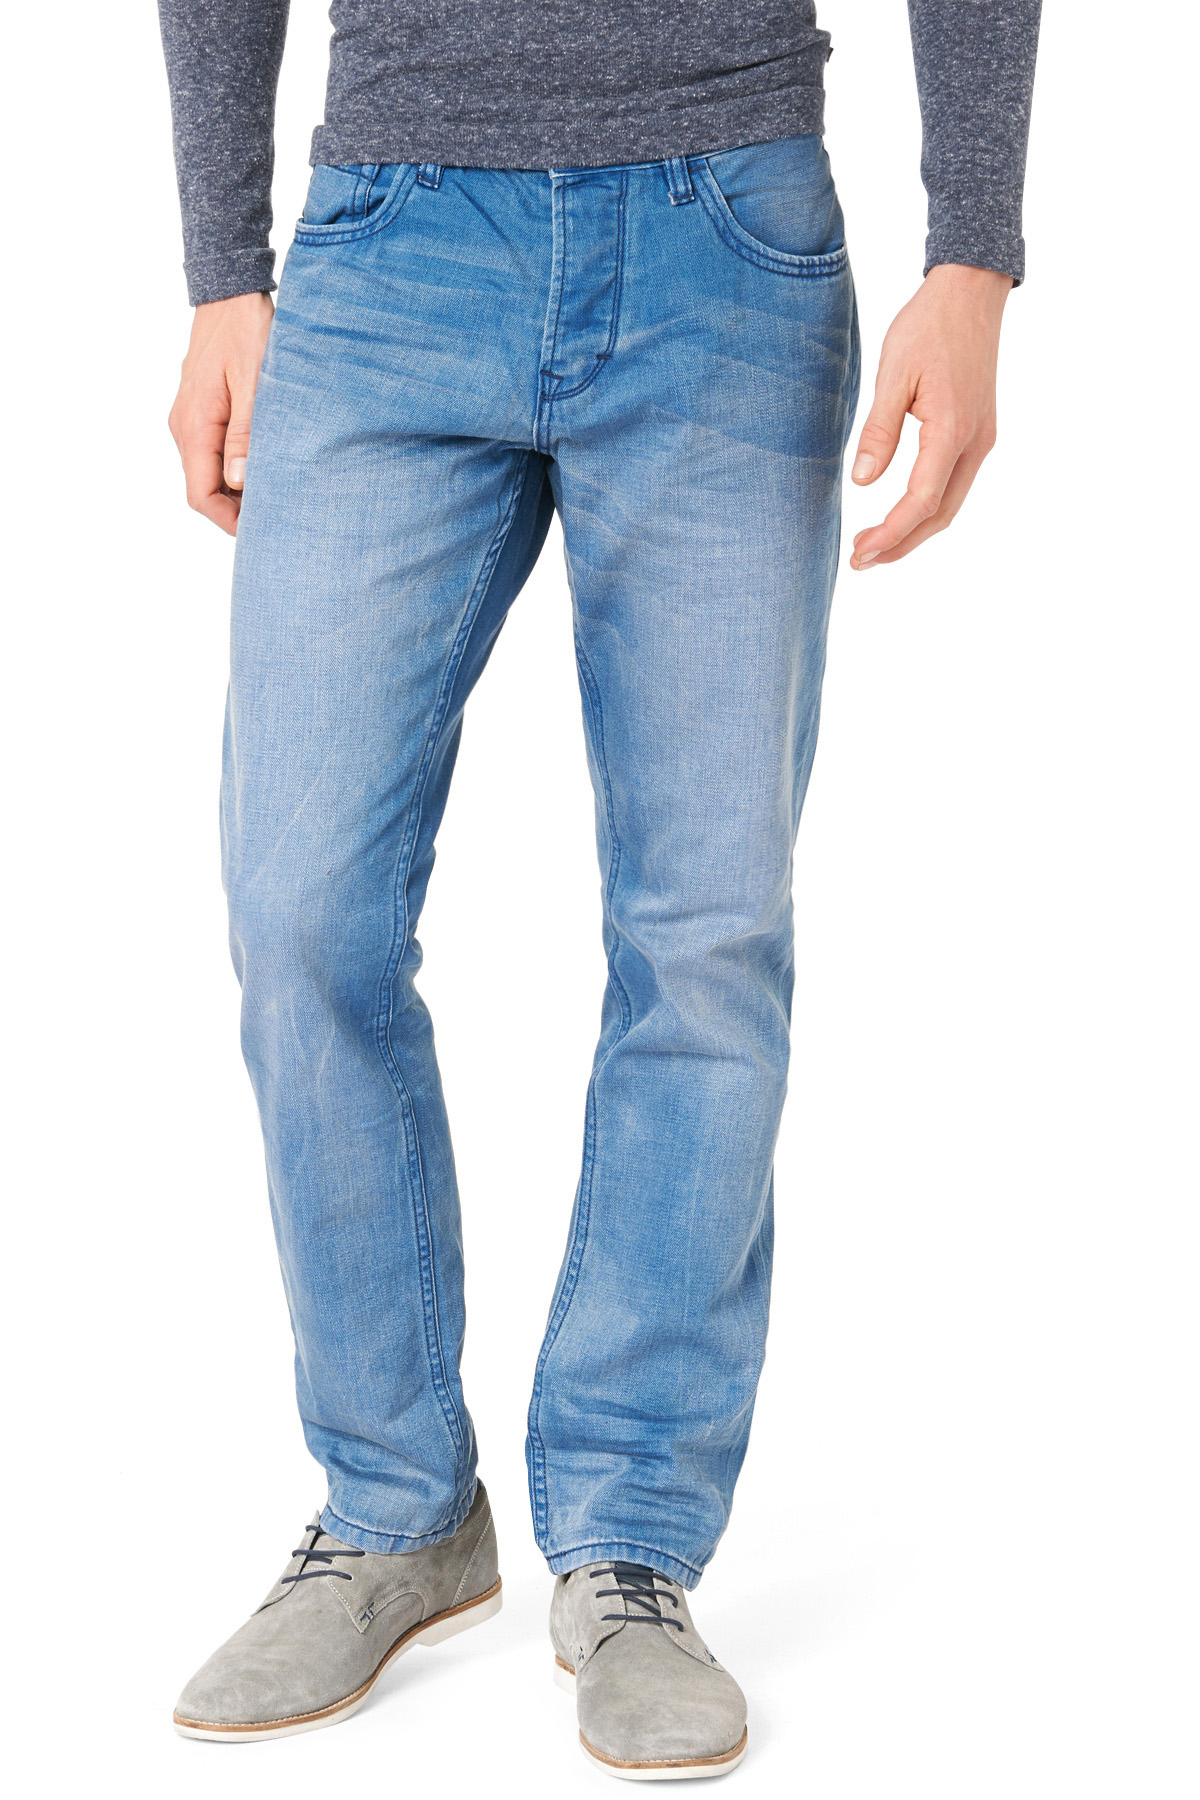 джинсы Josh Regular Slim Tom Tailorджинсы Josh Regular Slim<br><br>Размер INT: 29/34<br>Размер RU: 29/34<br>brand_id: 4998<br>category_str_var: Odezhda-muzhskaia-dzhinsy<br>category_url: Odezhda/muzhskaia/dzhinsy<br>is_new: 0<br>param_1: None<br>param_2: None<br>season_autumn: 0<br>season_spring: 0<br>season_summer: 0<br>season_winter: 0<br>Возраст: Взрослый<br>Пол: Мужской<br>Стиль: None<br>Тэг: Джинсы прямые<br>Цвет: 1059<br>custom_param_1: None<br>custom_param_2: None